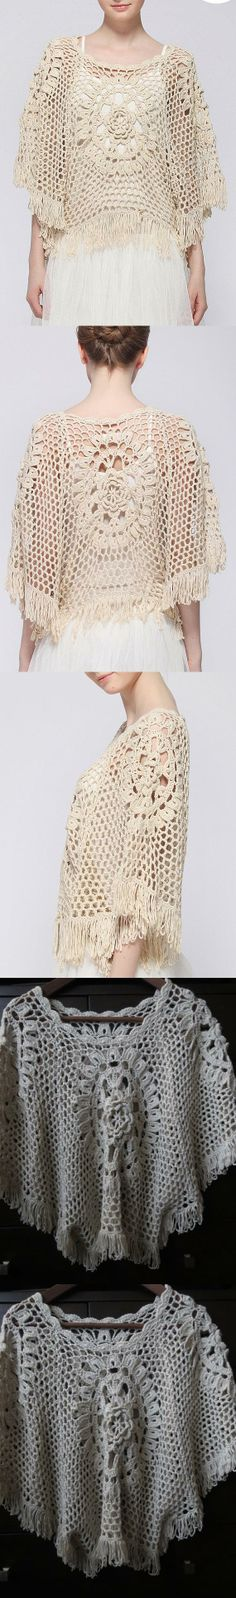 Handmade Crochet Lace Shawl Poncho Cape Blouse with Tassels Free Size Light Beige Color